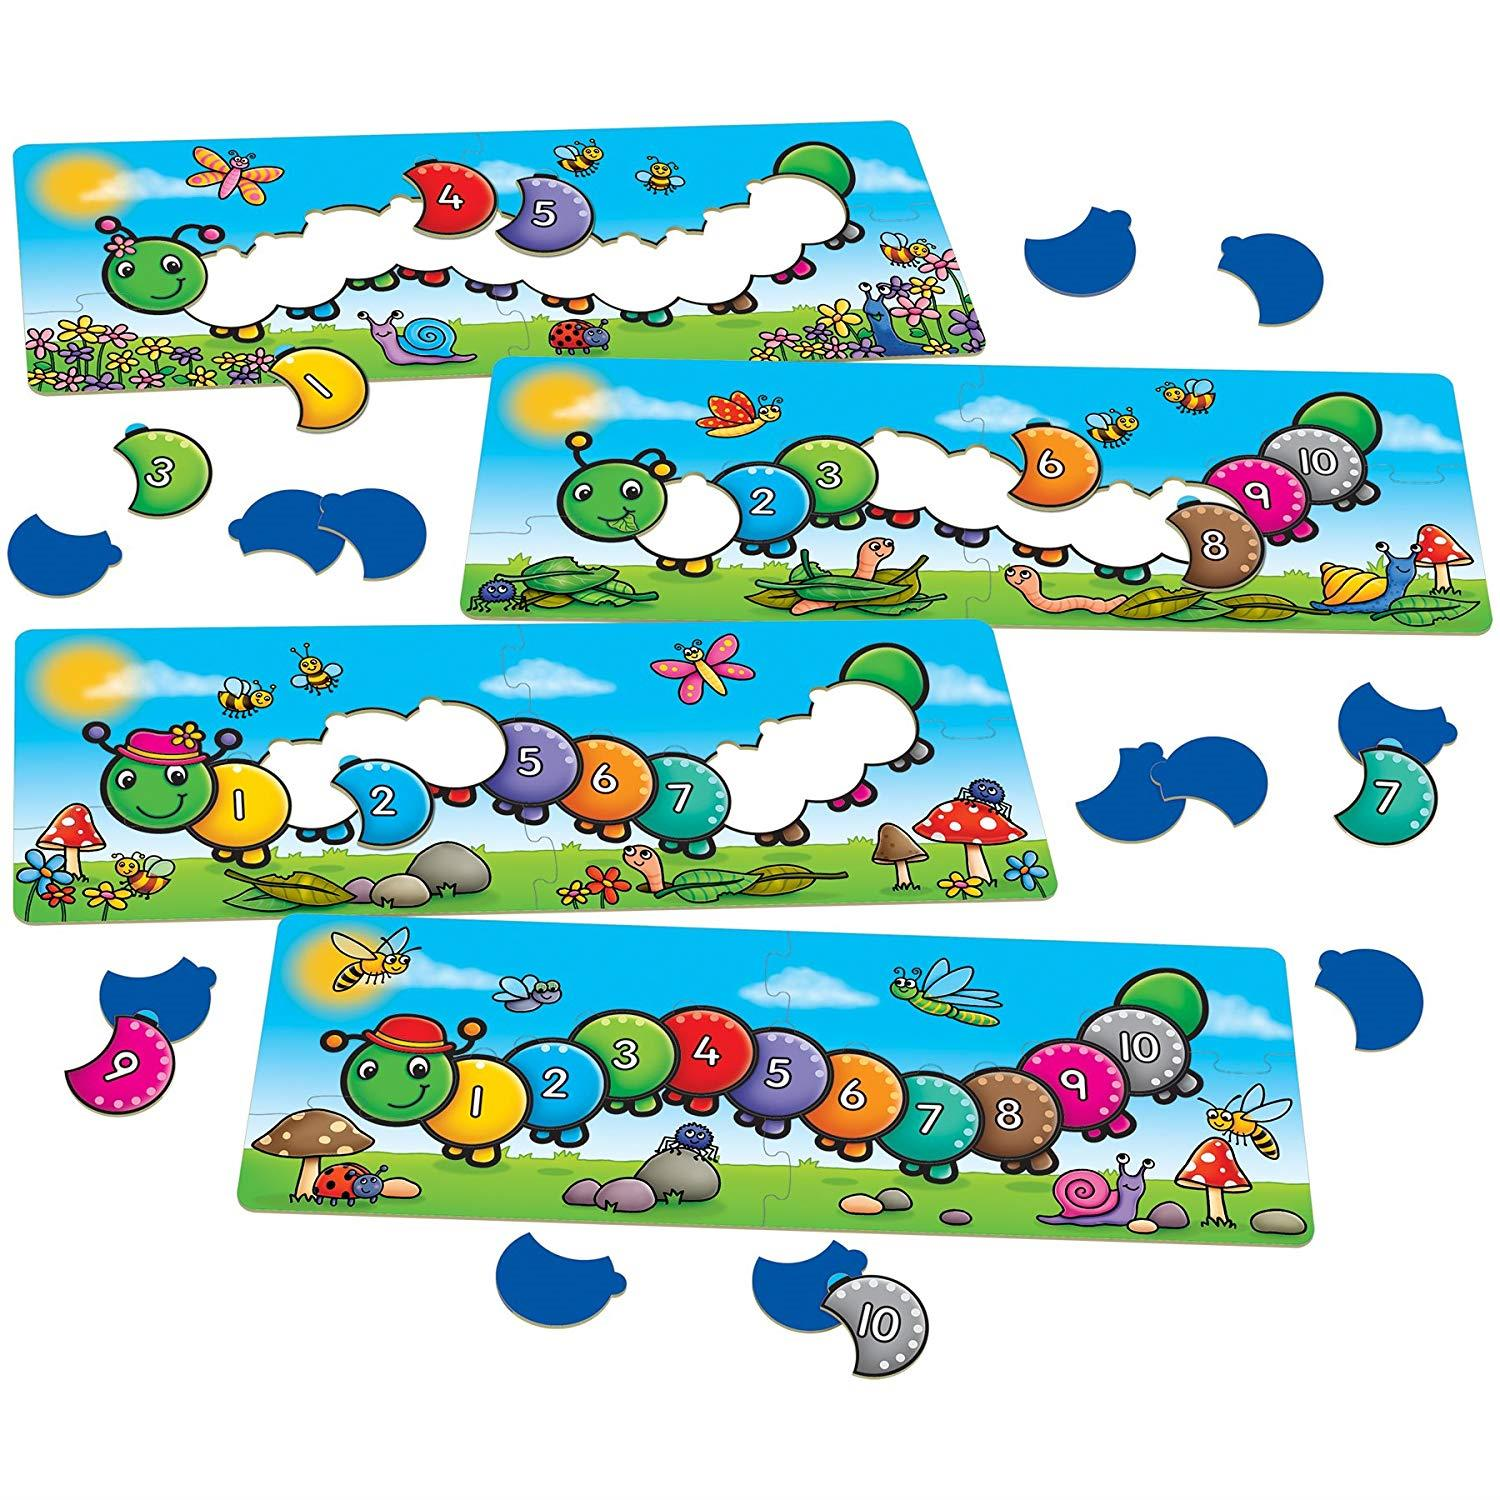 thumbnail 42 - Orchard Toys Educational Games For Kids Choose Game From Drop Down Menu